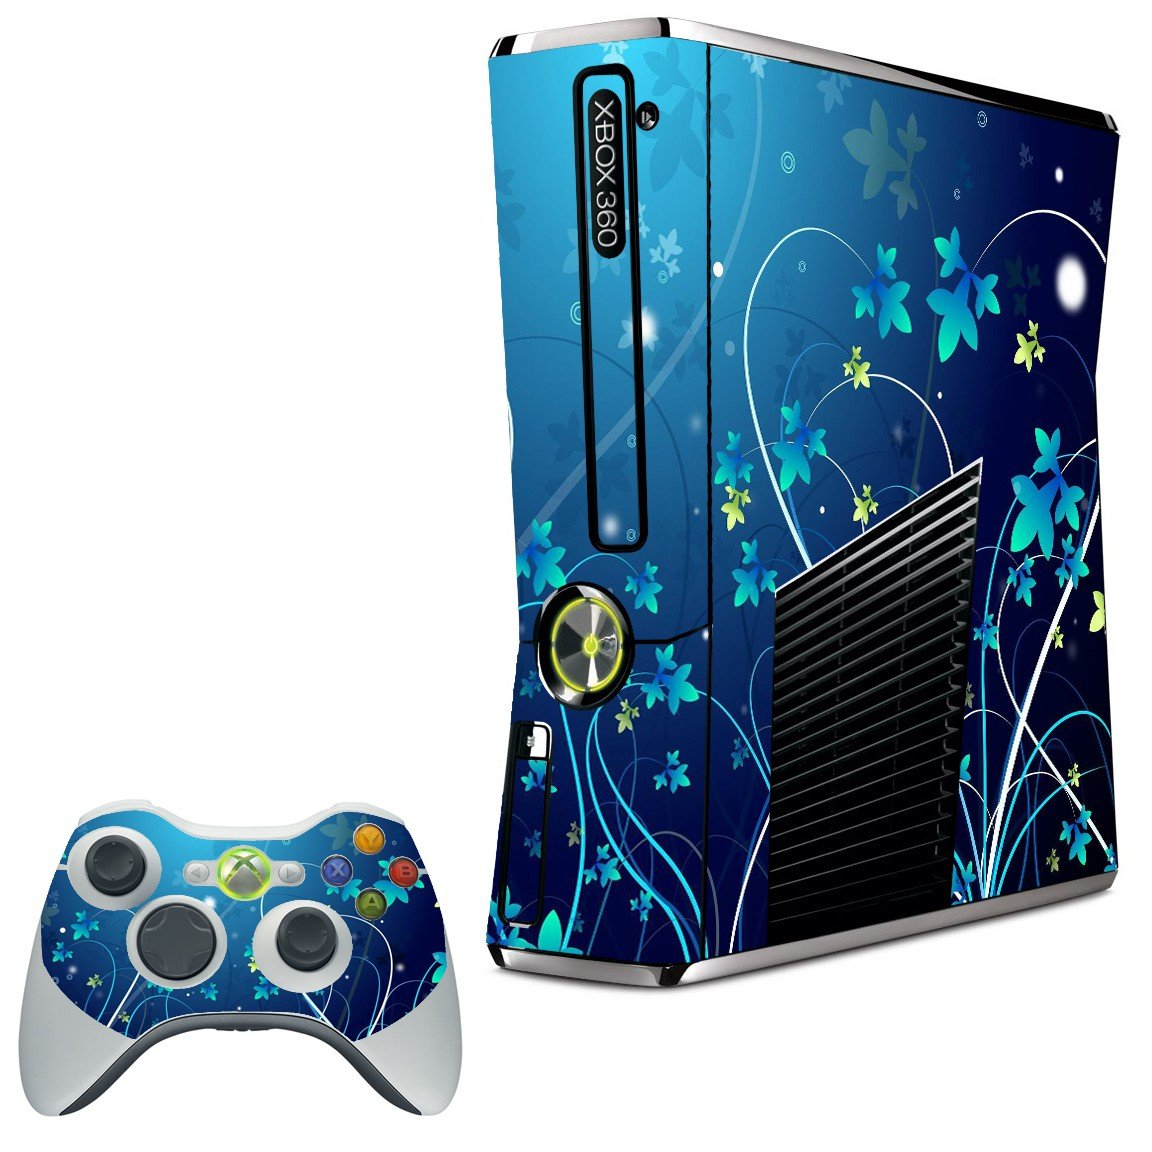 BLUE FLOWER XBOX 360 SLIM GAME CONSOLE SKIN